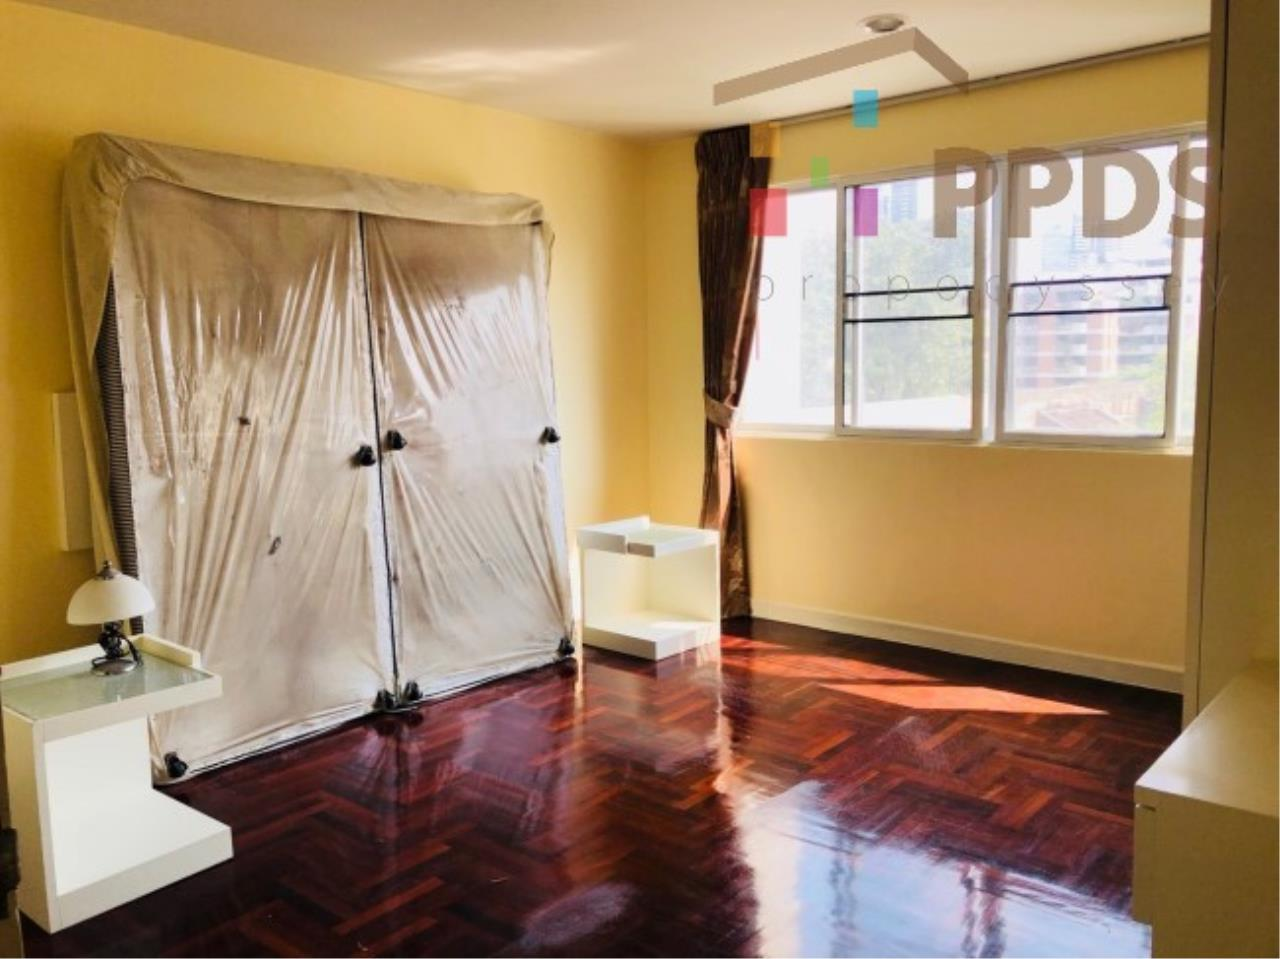 Propodyssey Agency's Sale 2 beds condo at Kiarti Thanee City Mansion Sukhumvit 31 only 6.78 MB 6